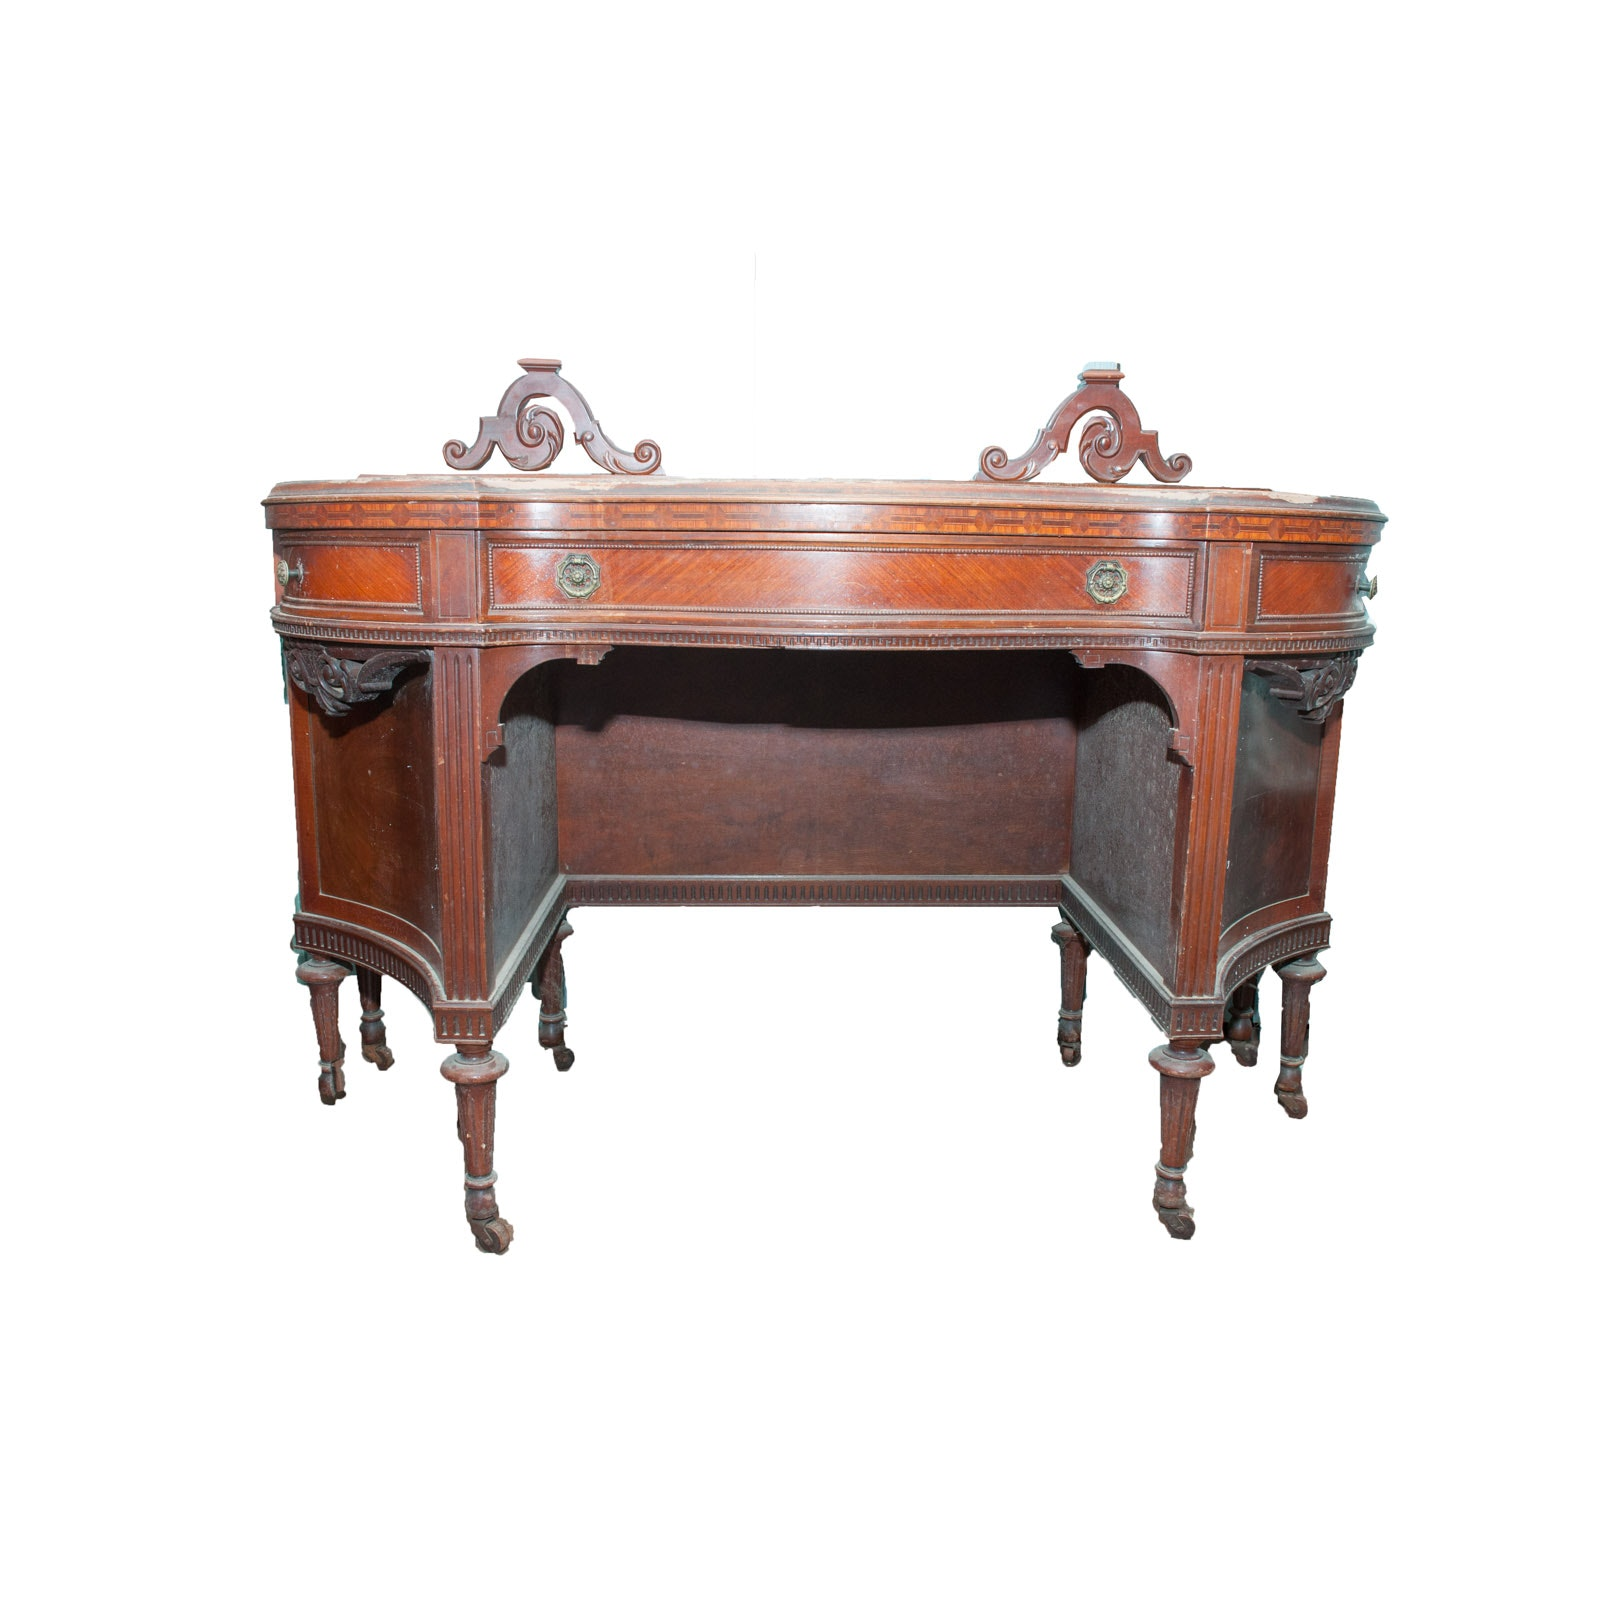 Antique Stille & Duhlmeier Company Project Vanity Table